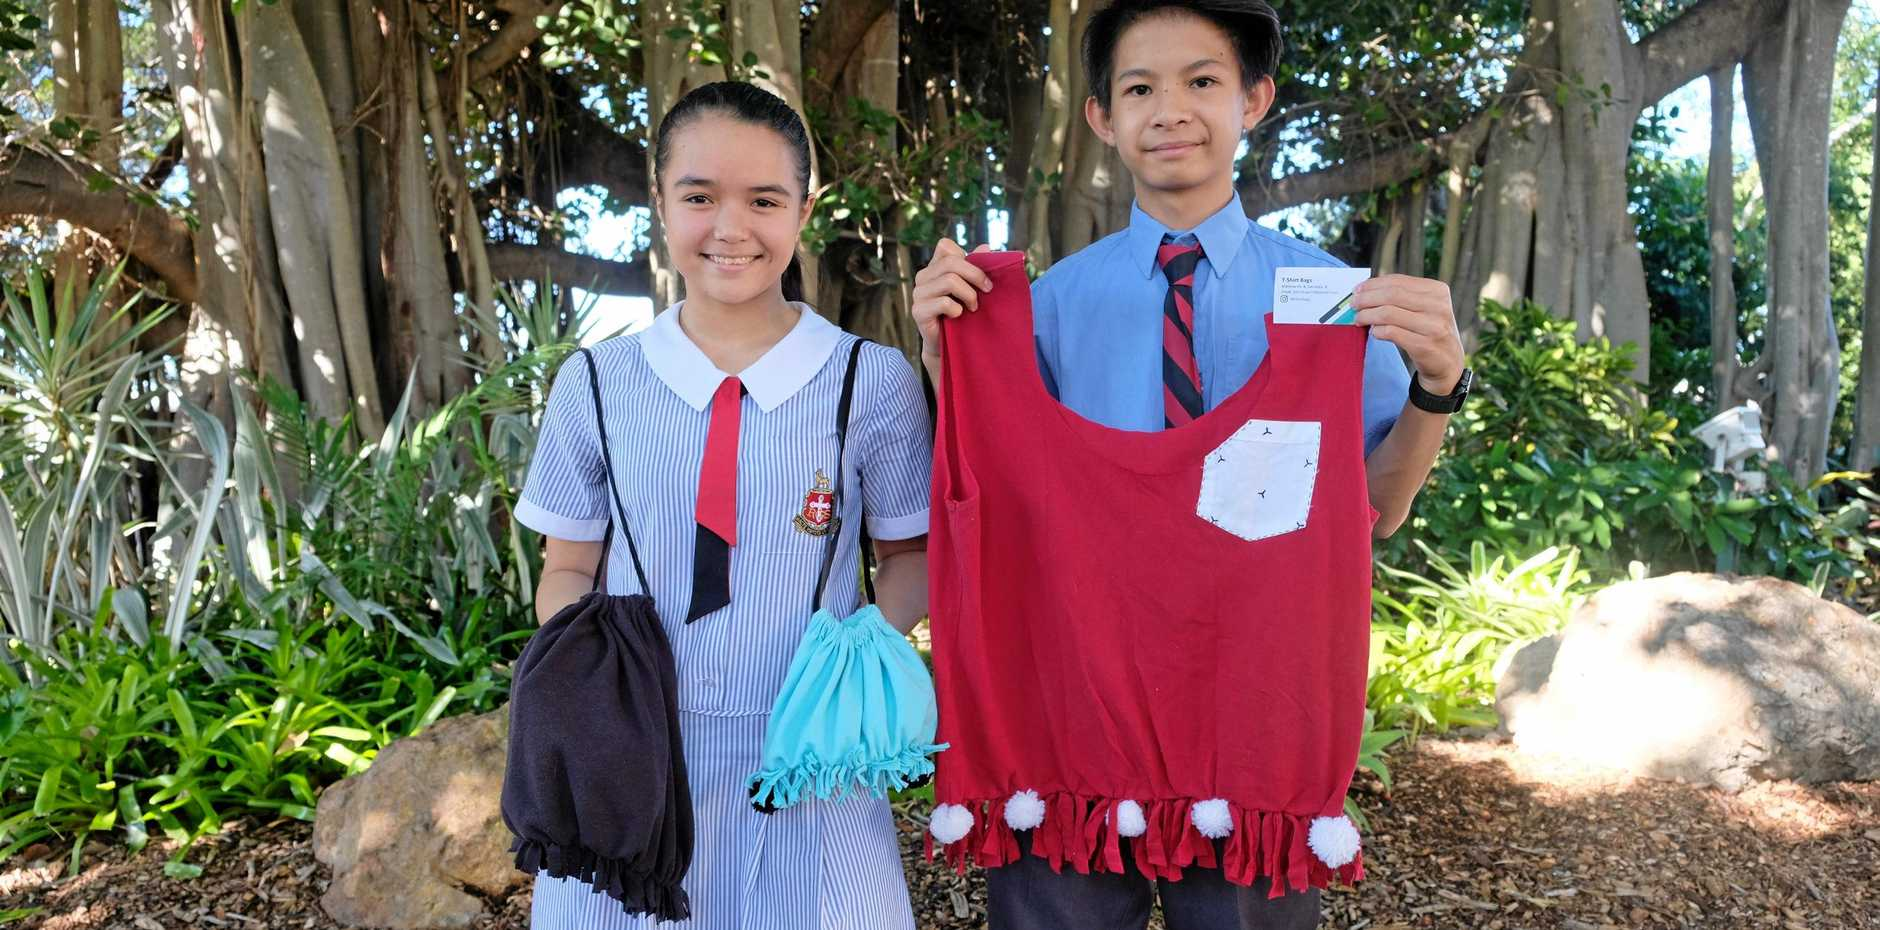 BUDDING BUSINESS OWNERS: Rockhampton Grammar School year eight students Mathew He and Samanta Rimmington have created their own business, making bags out of old t-shirts.